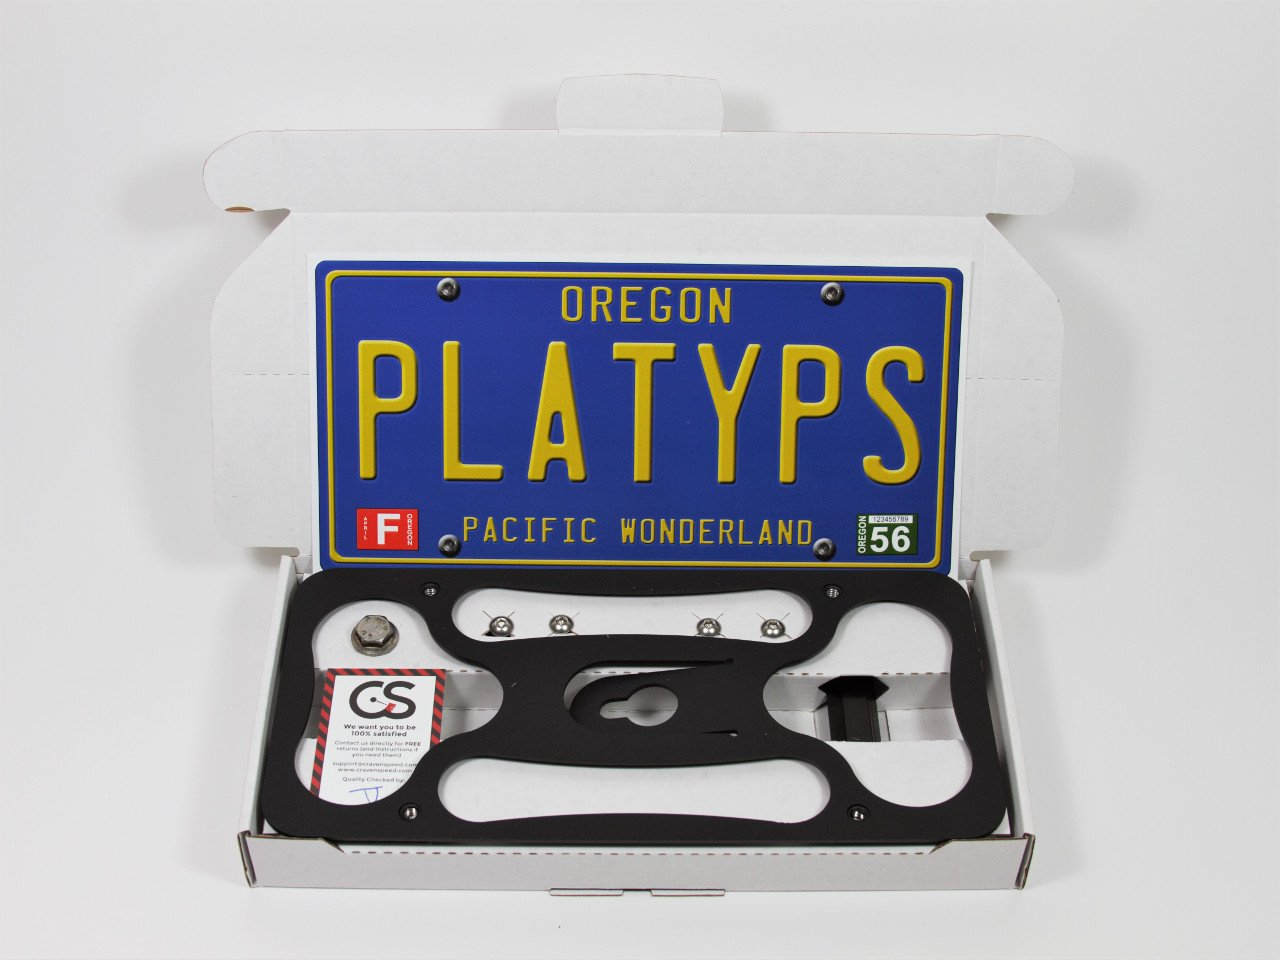 CravenSpeed Platypus License Plate Mount for Tesla Model 3 2017-2019 | No Drilling | Made of Stainless Steel & Aluminum | Made in USA by CravenSpeed (Image #2)